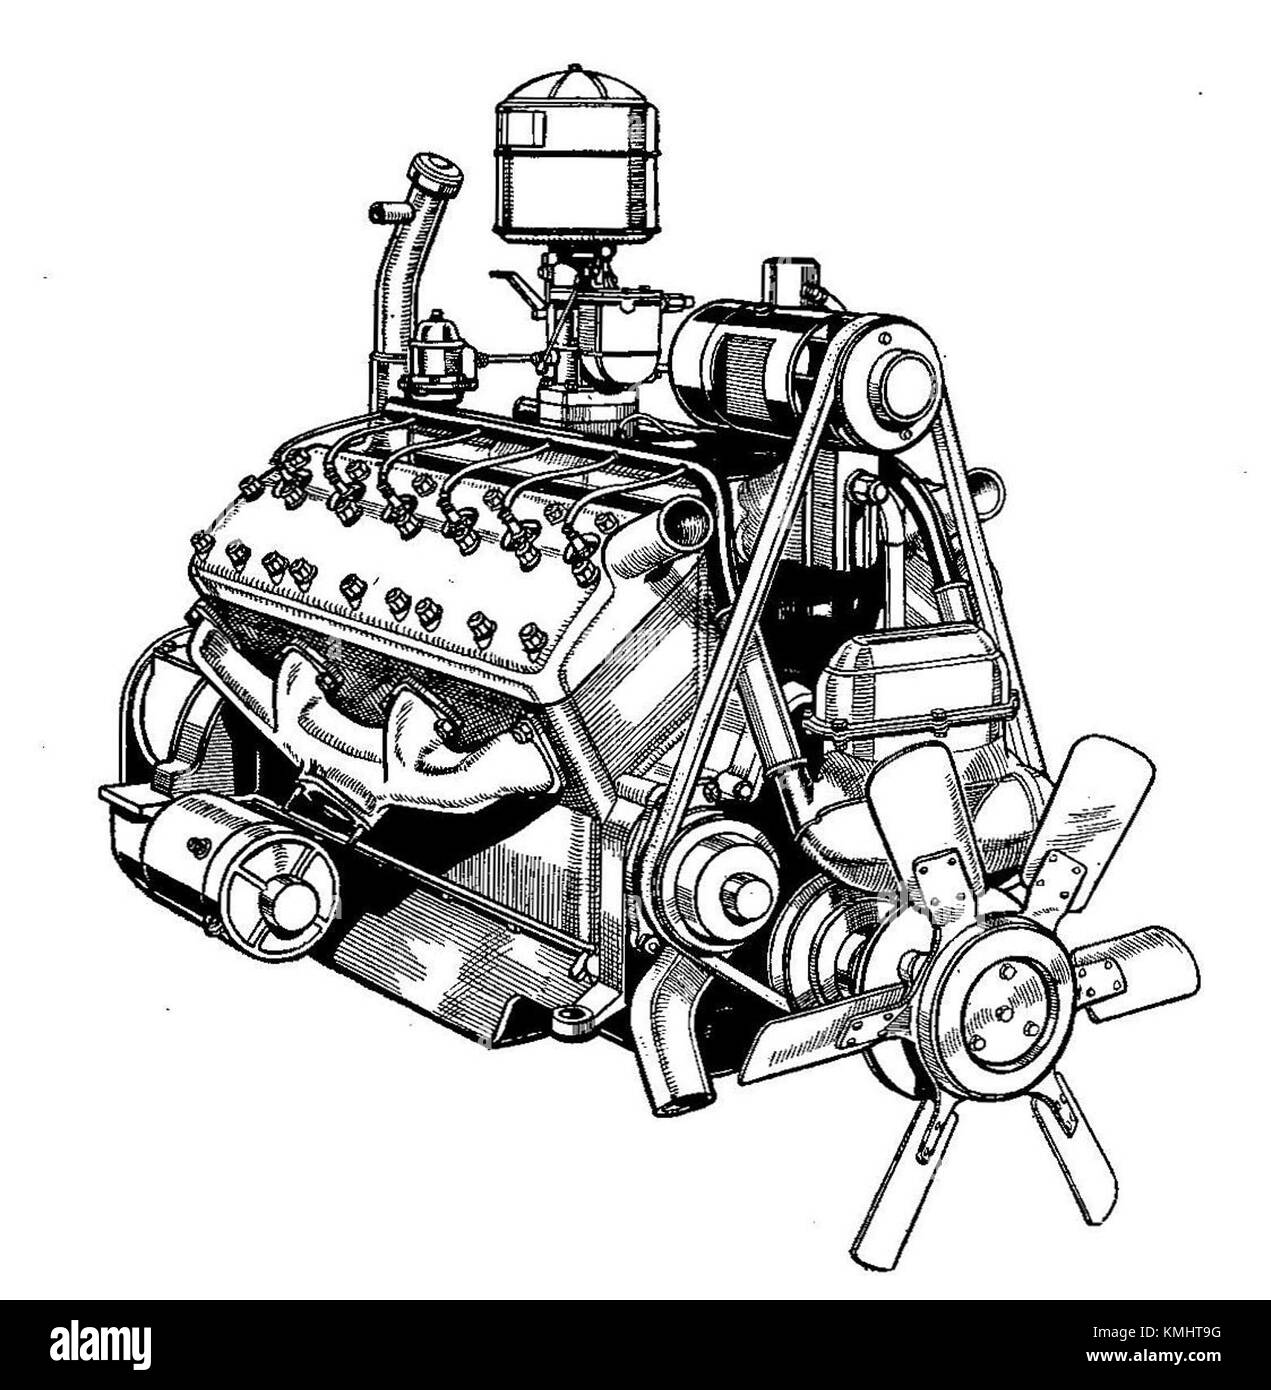 v12 engine cut out stock images pictures alamy rh alamy com 1943 Lincoln Zephyr V12 Crate Engine